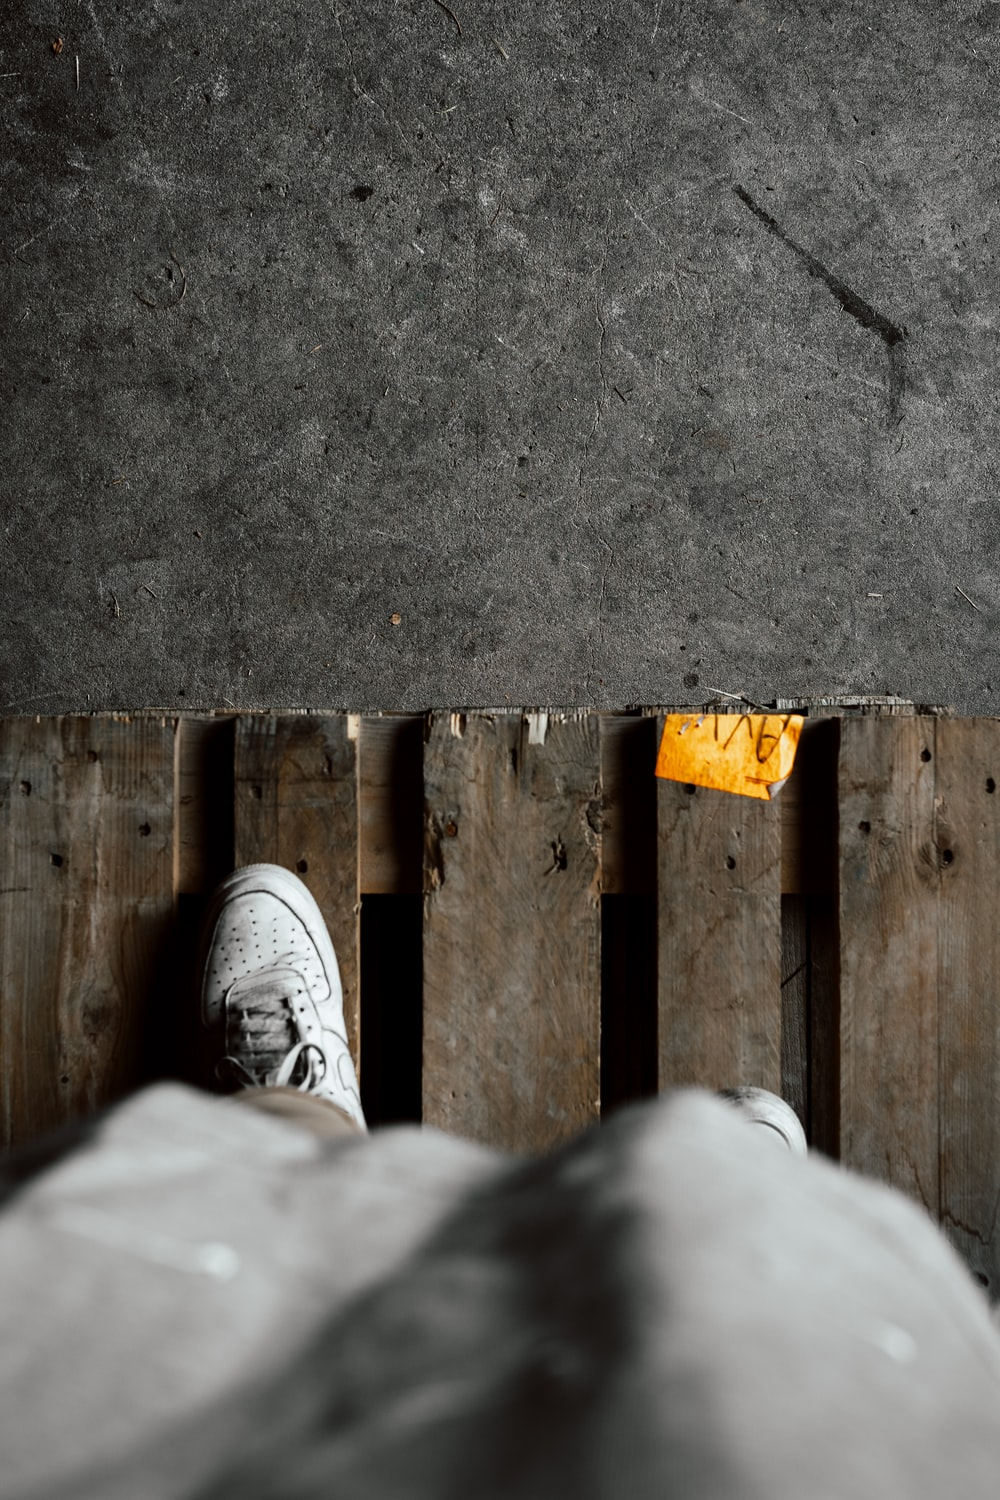 person in white pants and gray sneakers standing on gray concrete floor